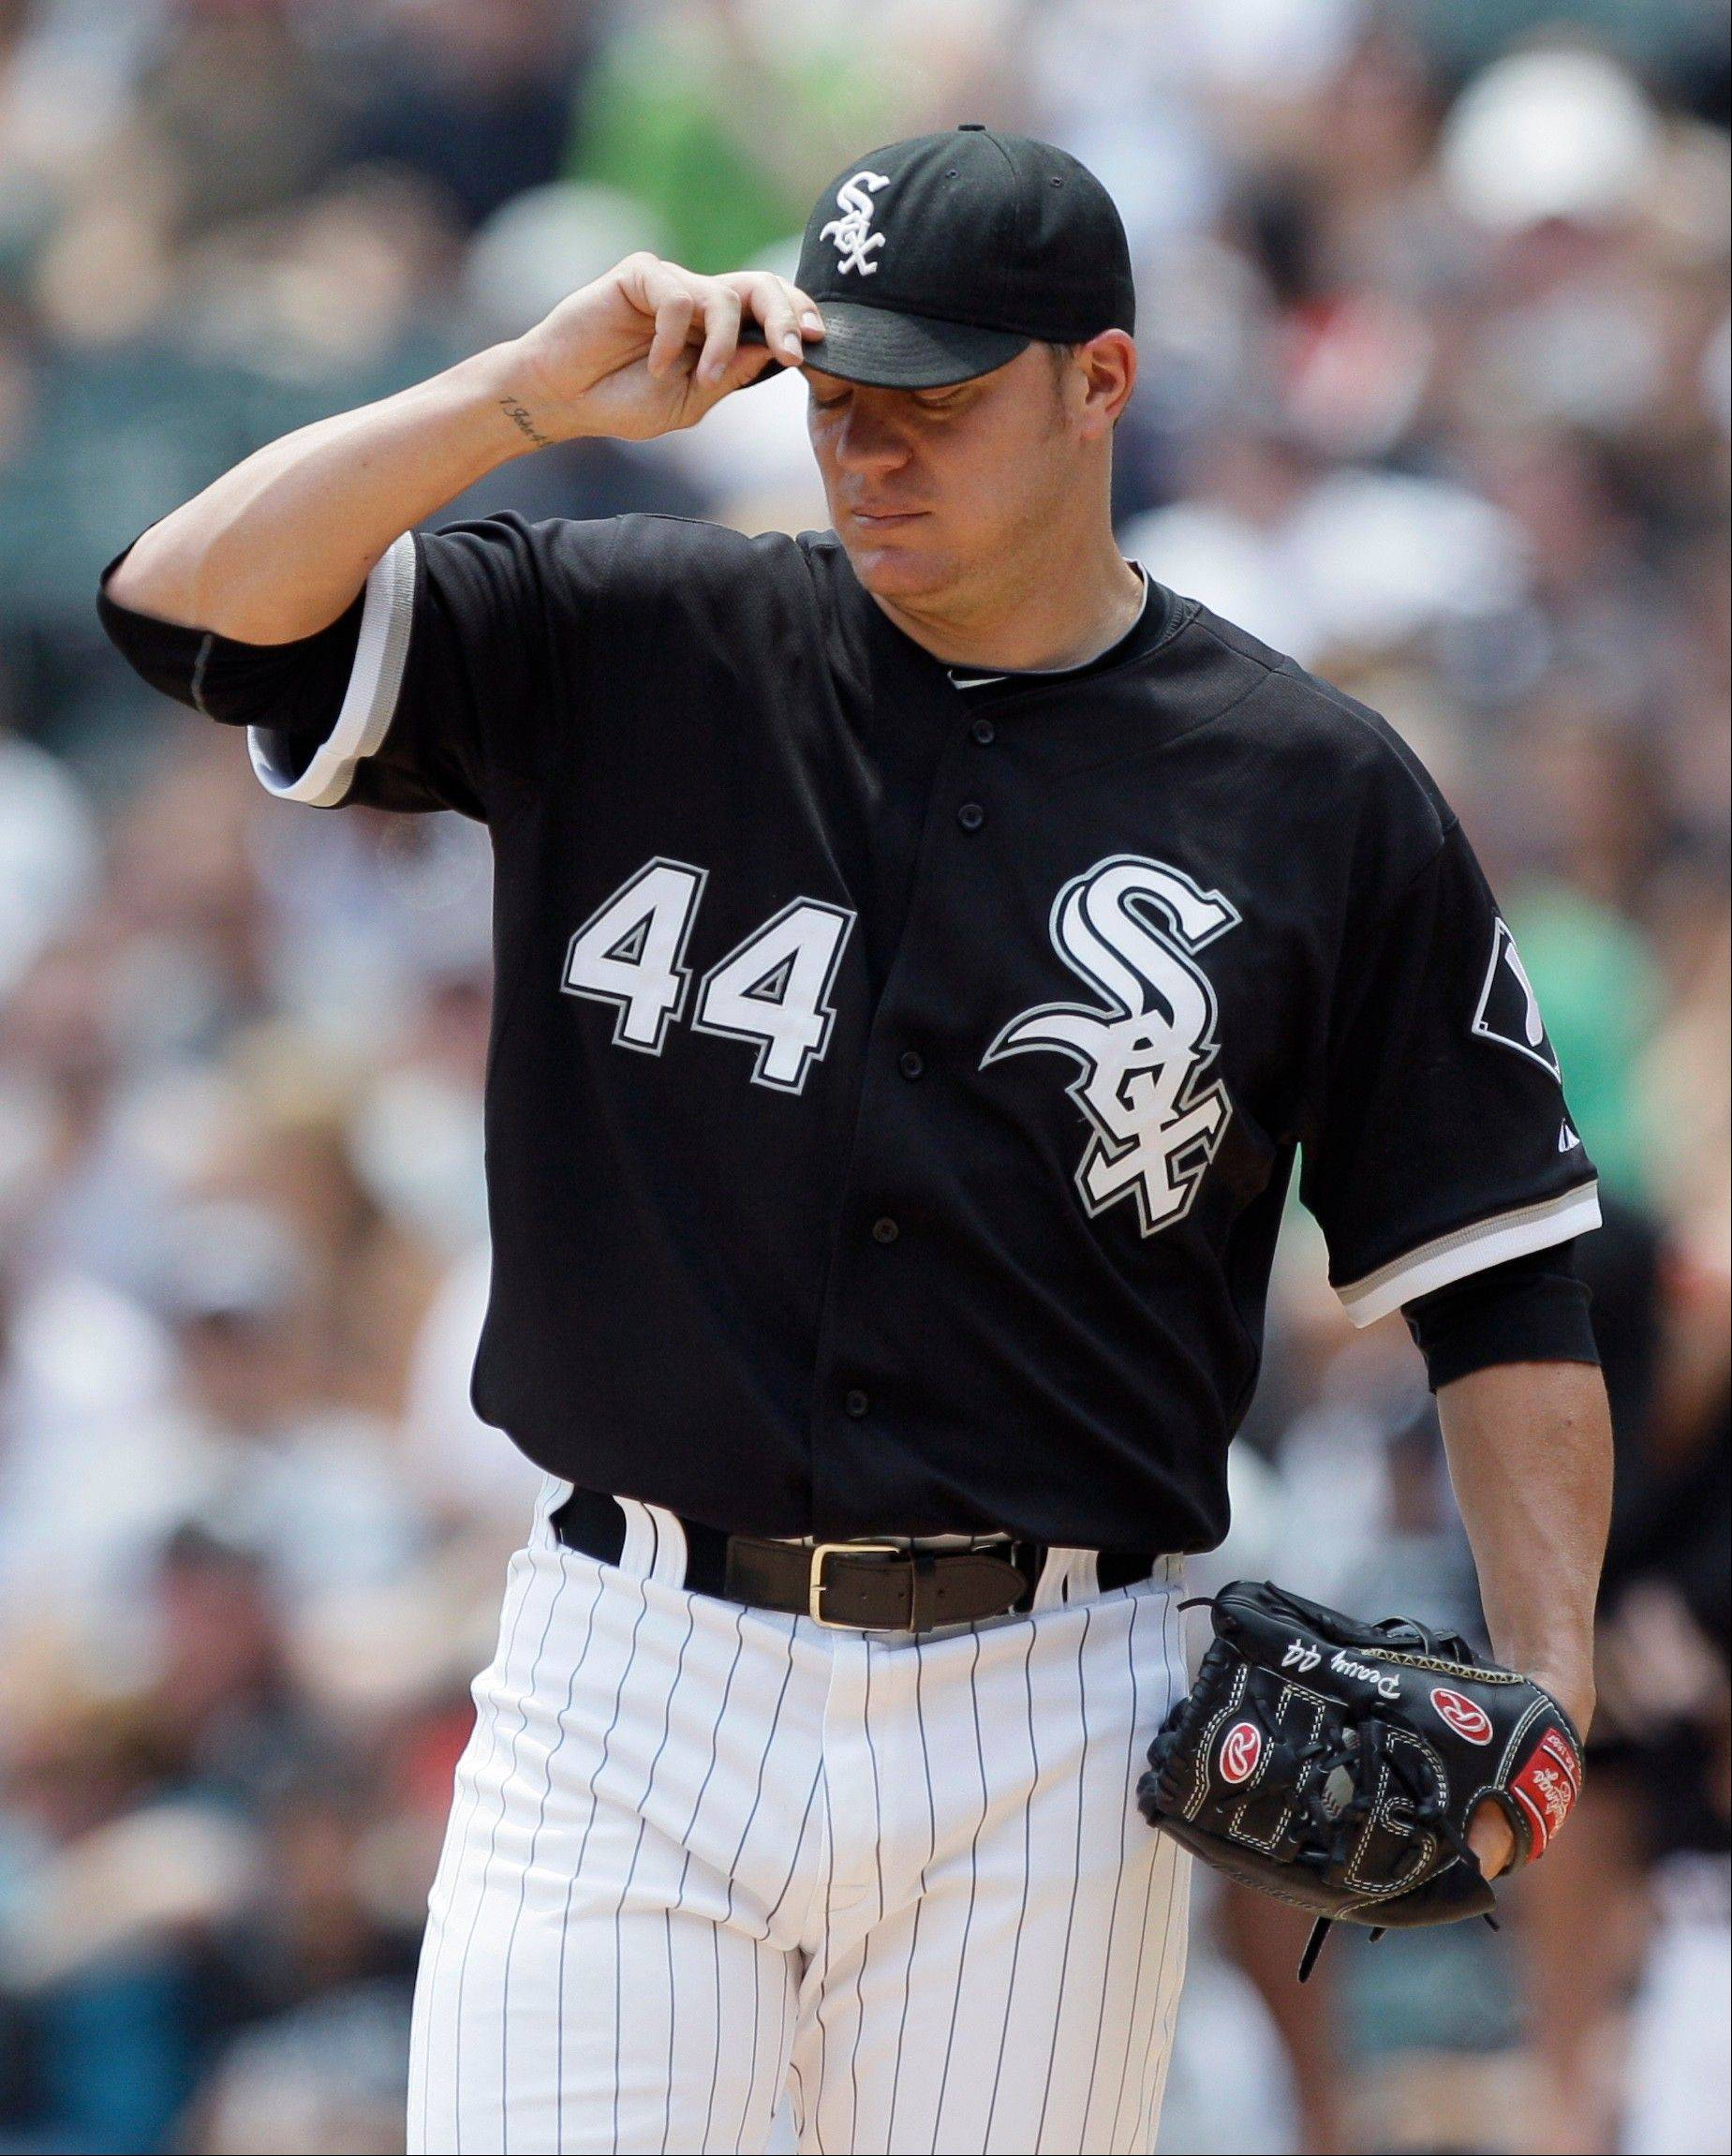 White Sox starter Jake Peavy allowed 5 runs on 10 hits in Sunday's loss to the Twins at U.S. Cellular Field.